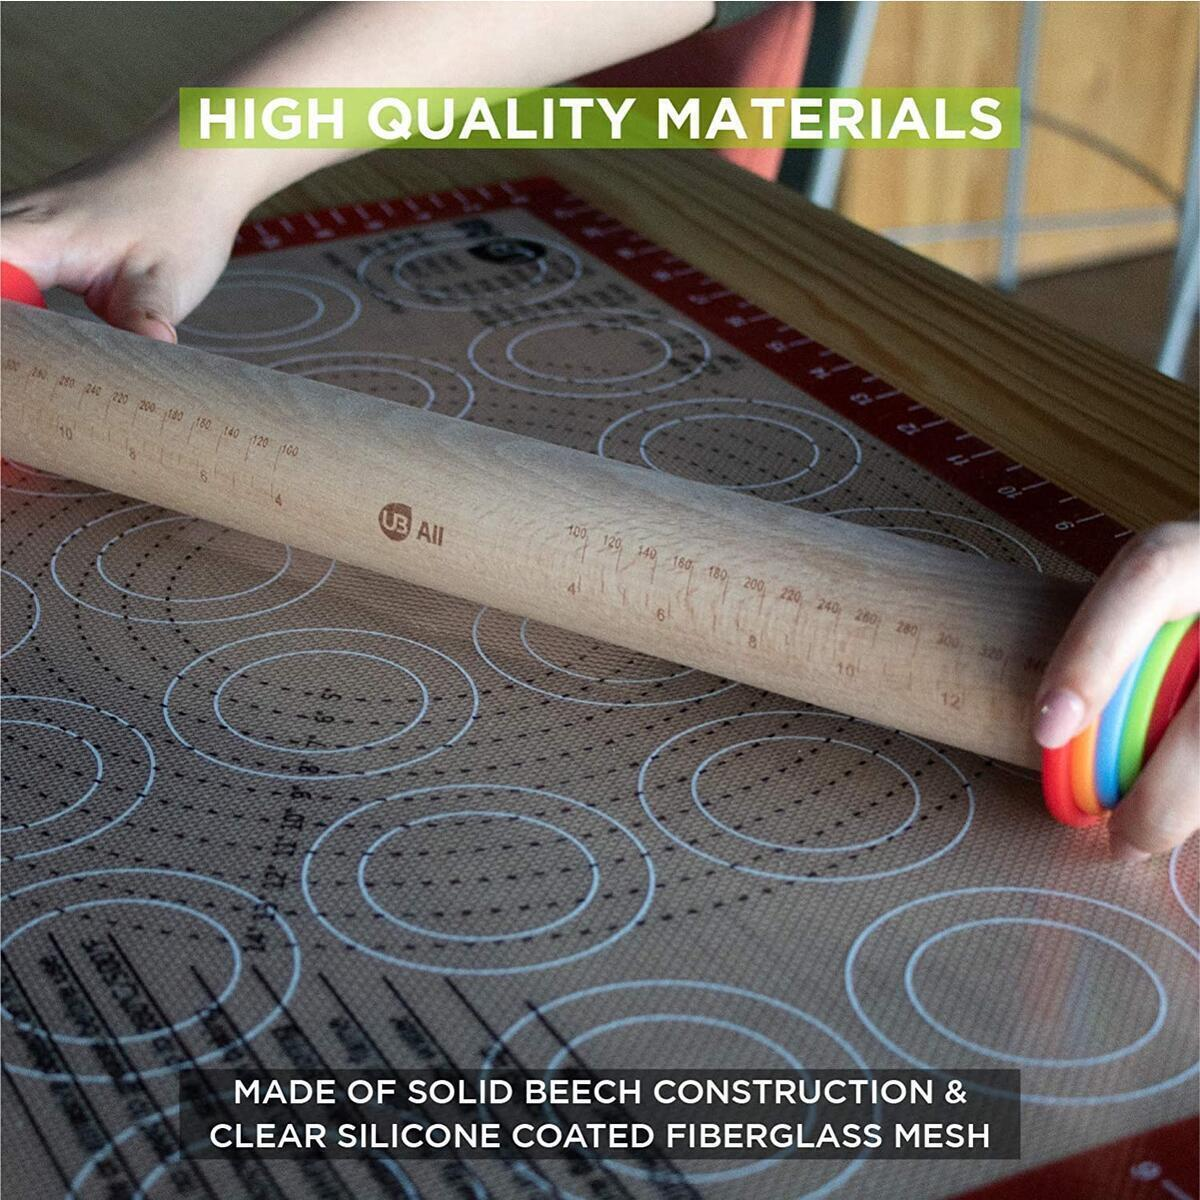 Set of Rolling Pin and Pastry Silicone Baking Mat Full Sheet Extra Thick 1/32